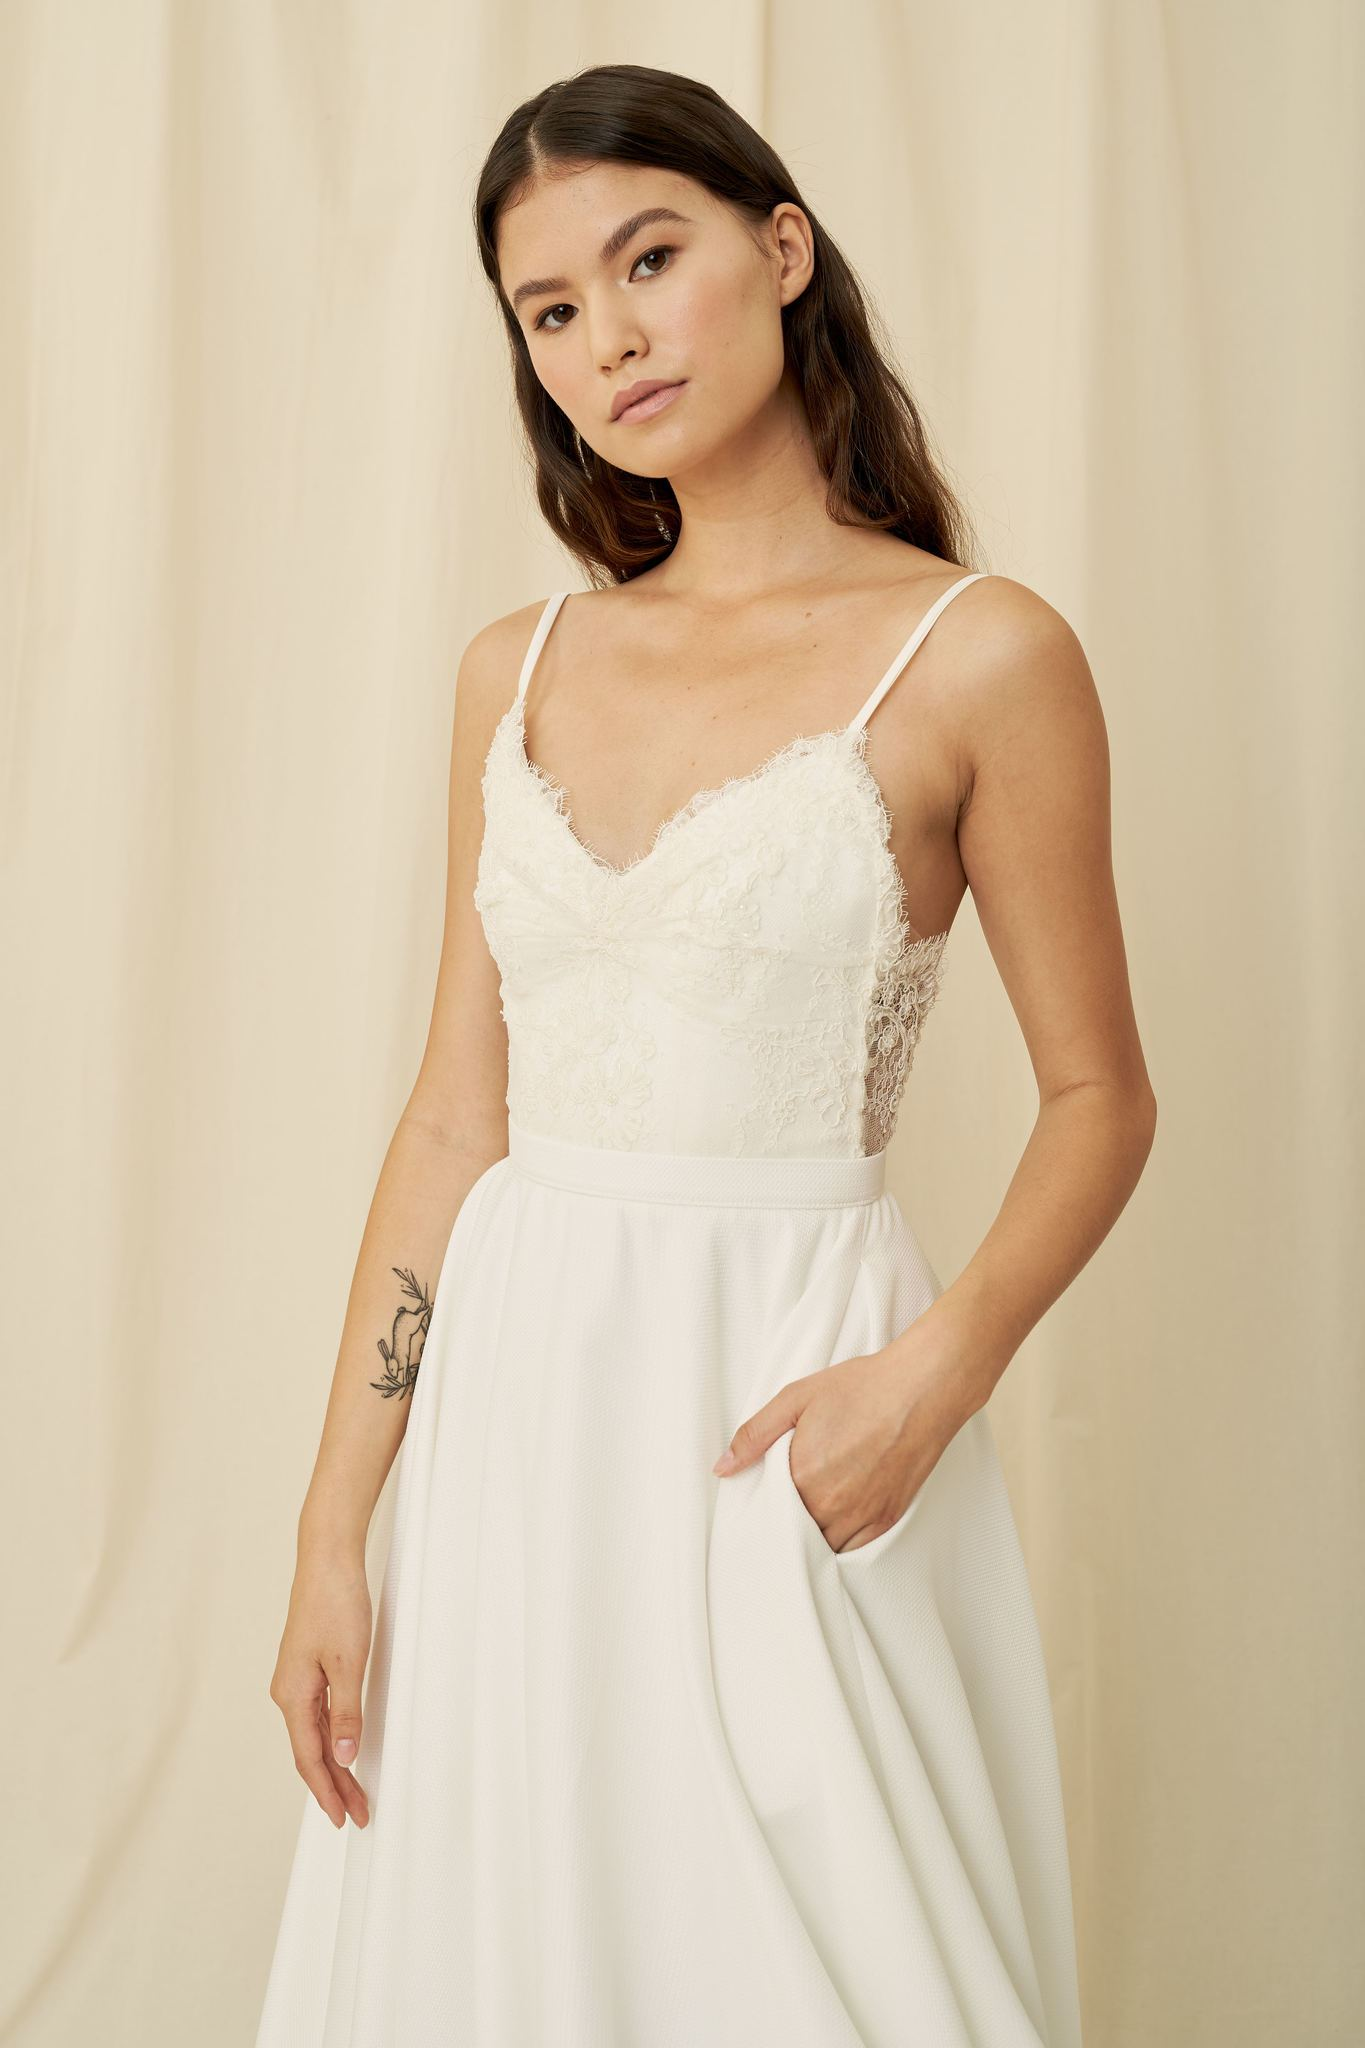 A romantic wedding dress with a backless lace bodice, button up back, and crepe skirt with pockets by Truvelle